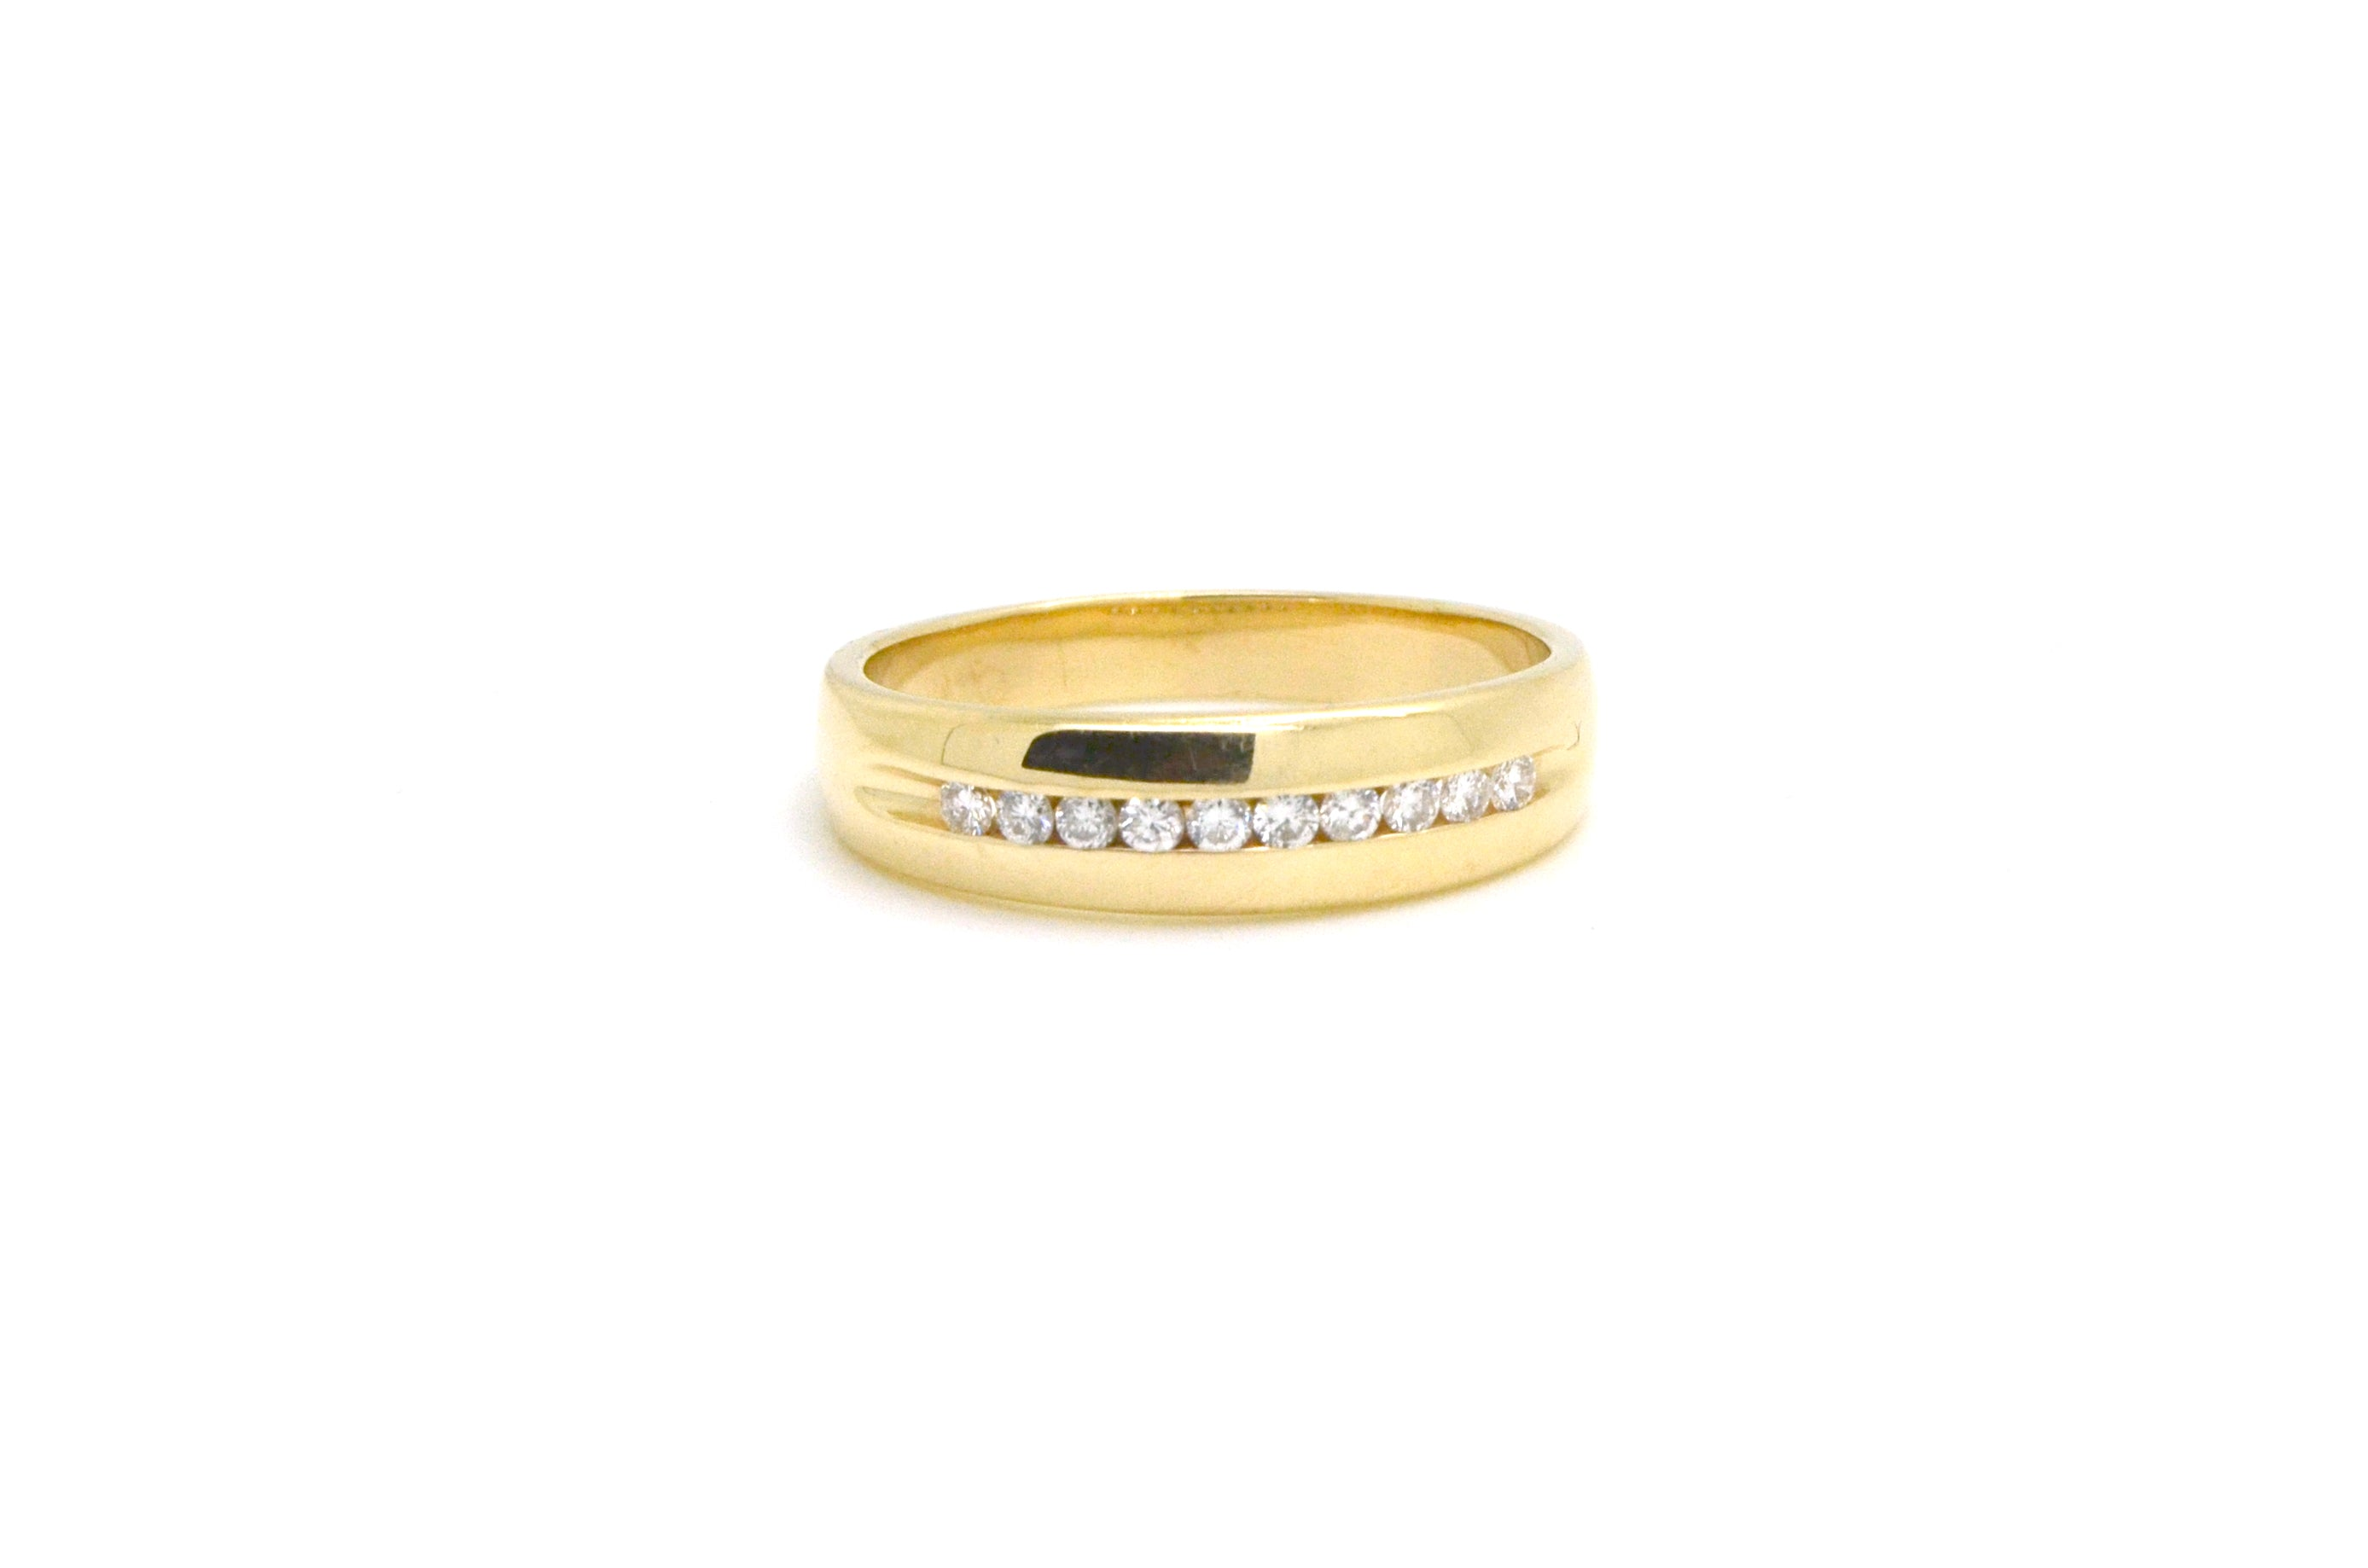 14k Yellow Gold Channel-Set Round Diamond Band Ring - .35 ct. total - Size 11